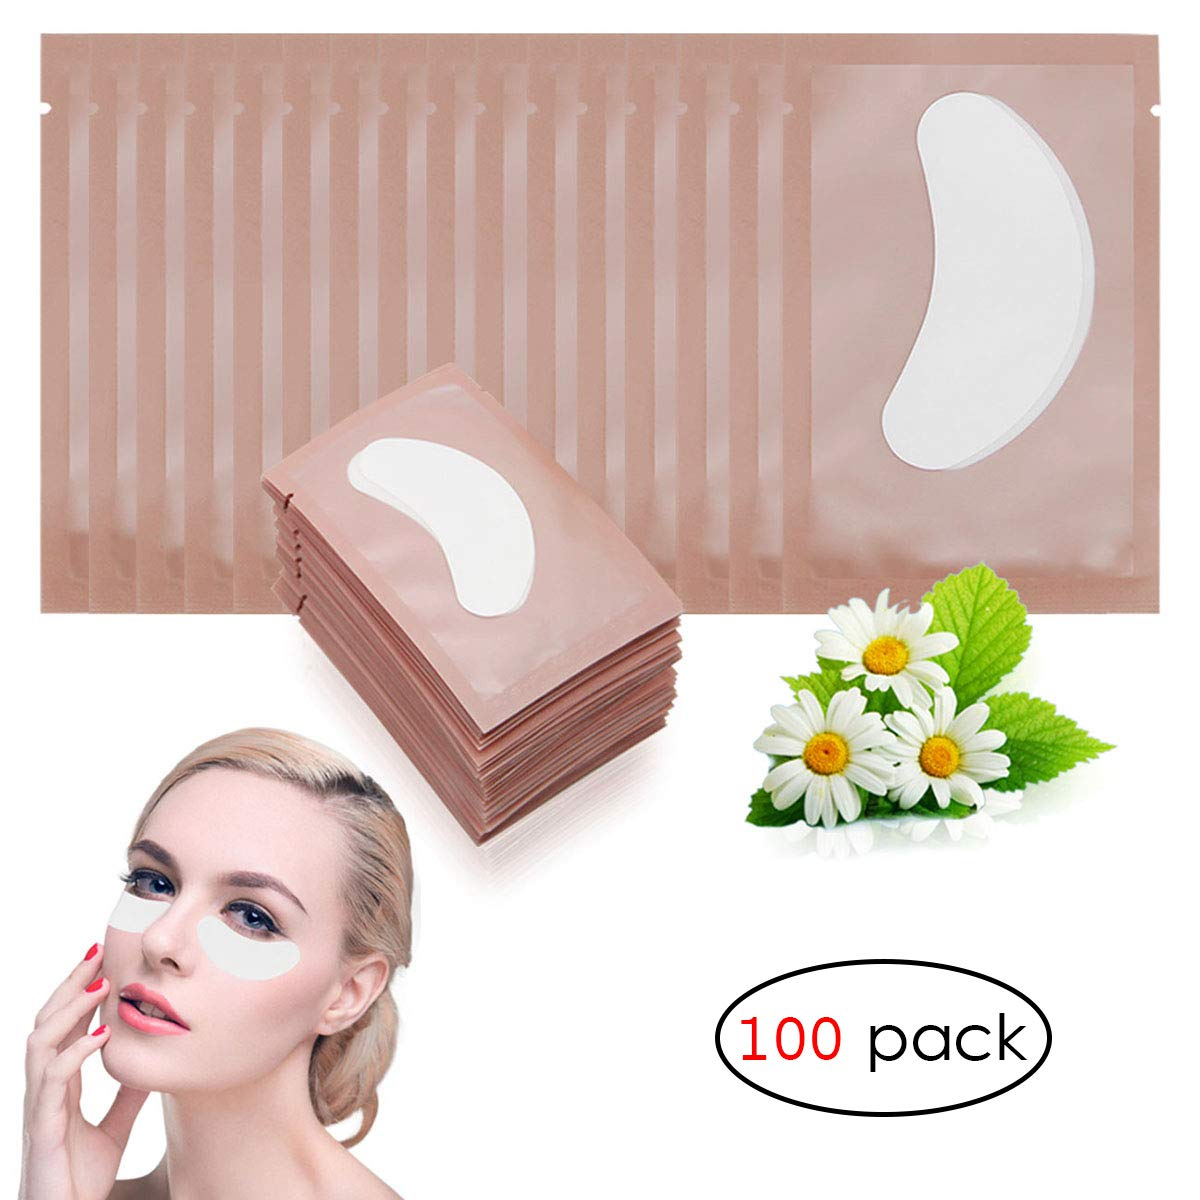 Adecco LLC 100 Pairs Under Eye Pads Lint Free Lash Extension Eye Gel Patches for DIY False Eyelash Extension Makeup,Eye Mask Beauty Tool